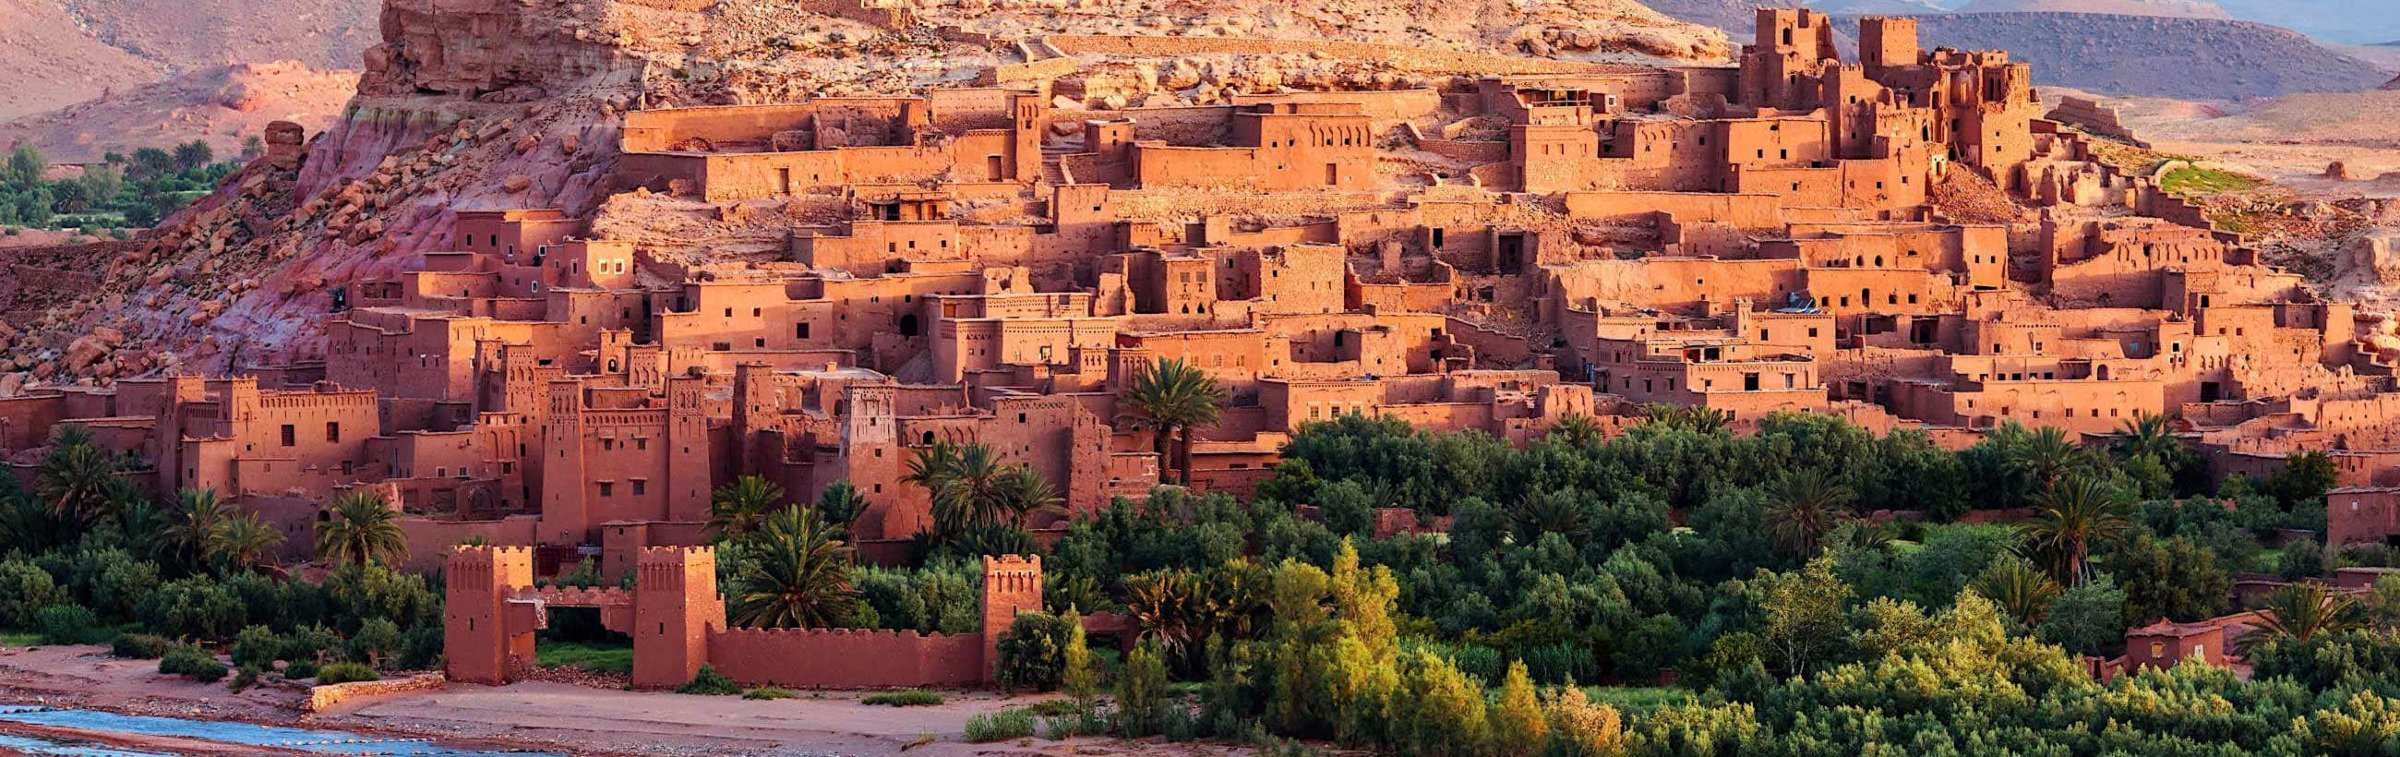 8-Day Marrakesh and Fes Experience - Morocco Itinerary